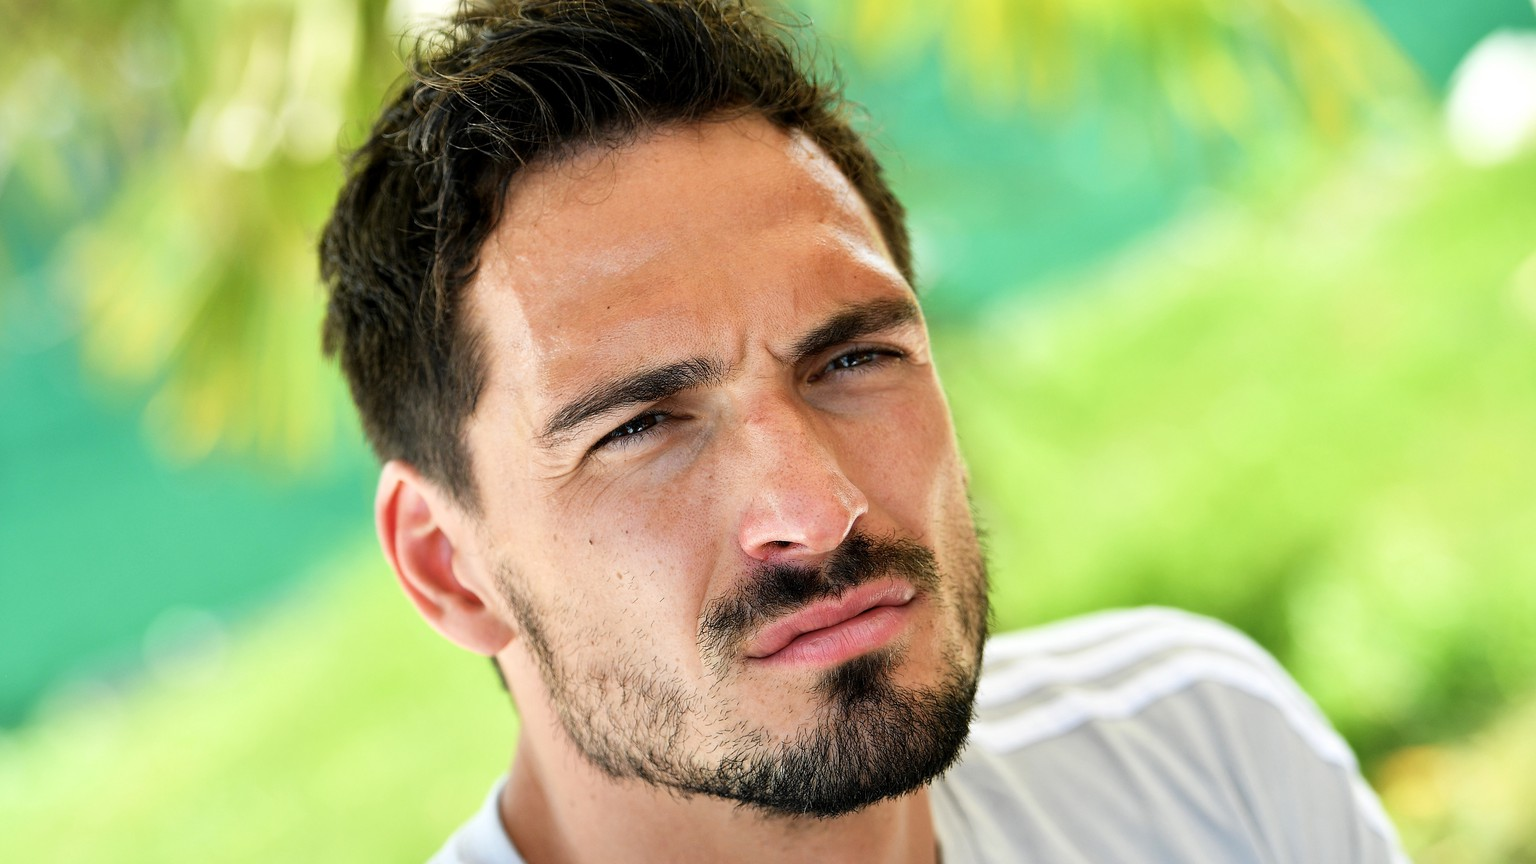 epa06786519 Germany's Mats Hummels speaks to journalists during a media day of the German national soccer team in Eppan, Italy, 05 June 2018. The German squad prepares for the upcoming FIFA World Cup 2018 in Russia at a training camp in Eppan until 07 June 2018.  EPA/SASCHA STEINBACH